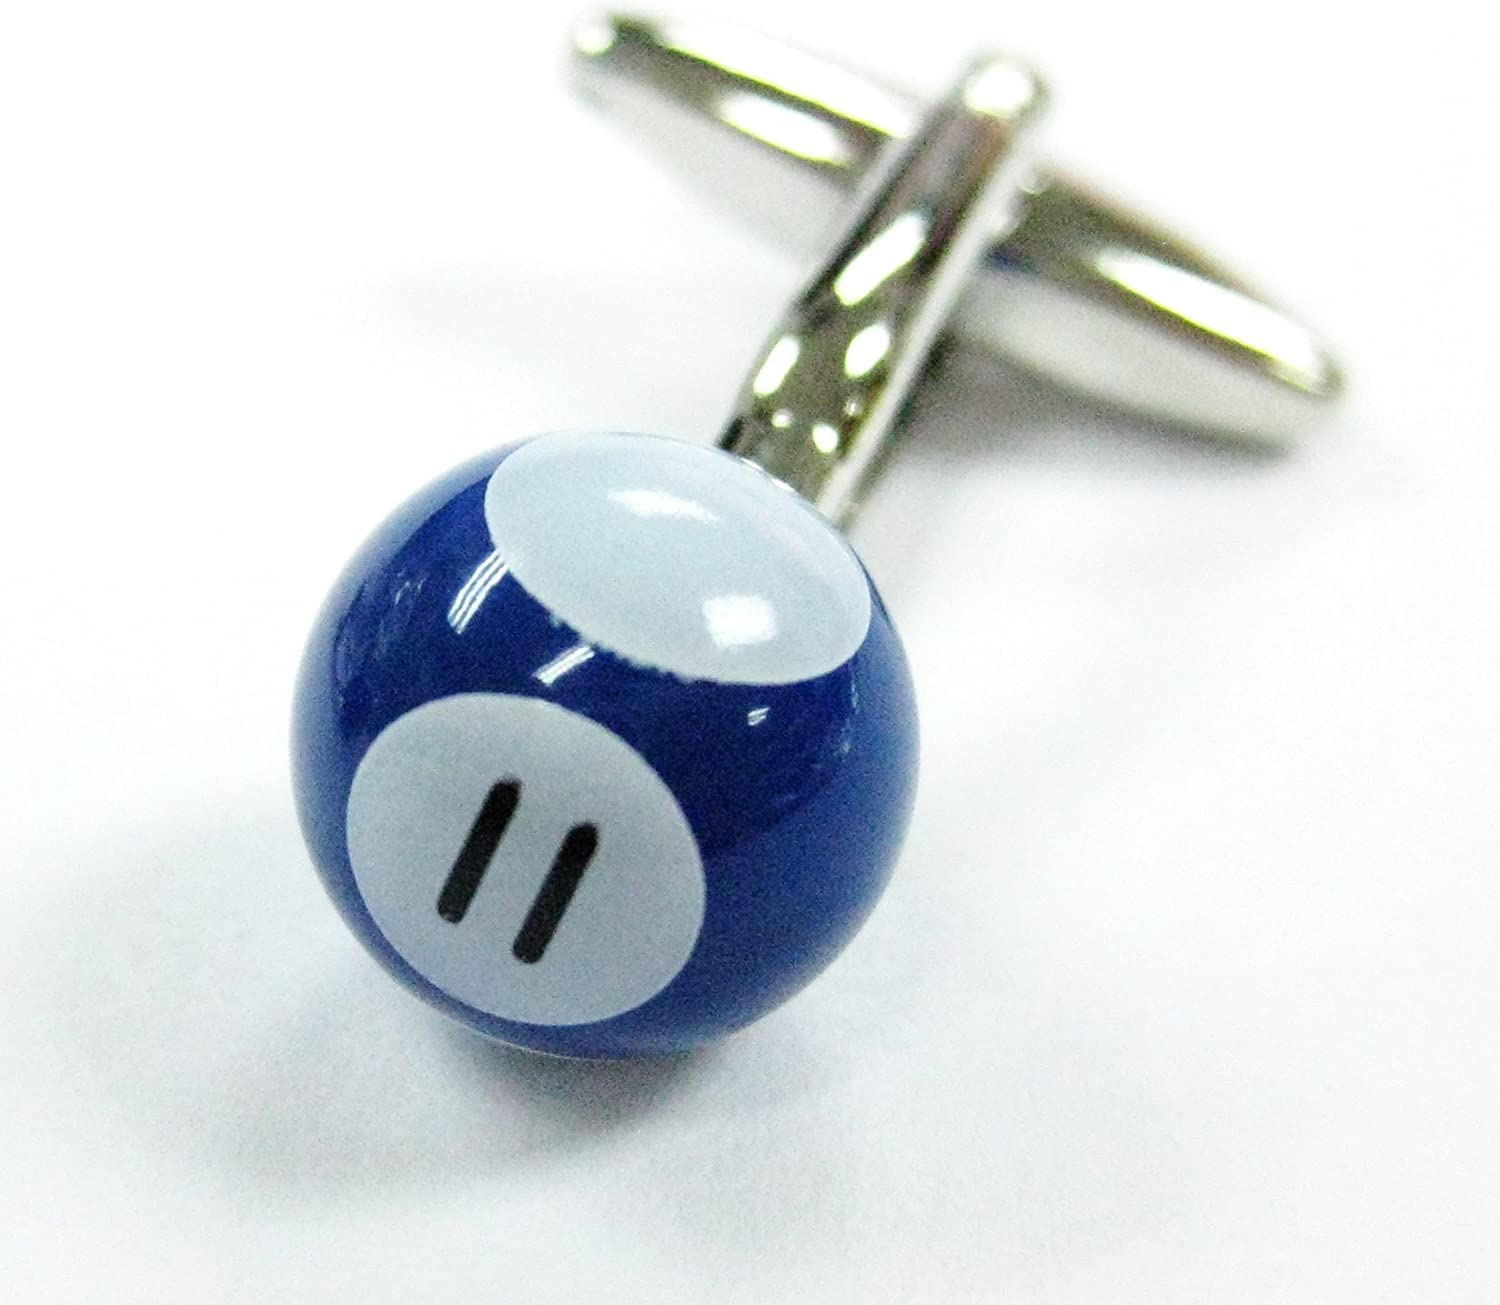 Tailor B Pool Ball Cufflinks Blue 11 Ball Snooker Cuff Links